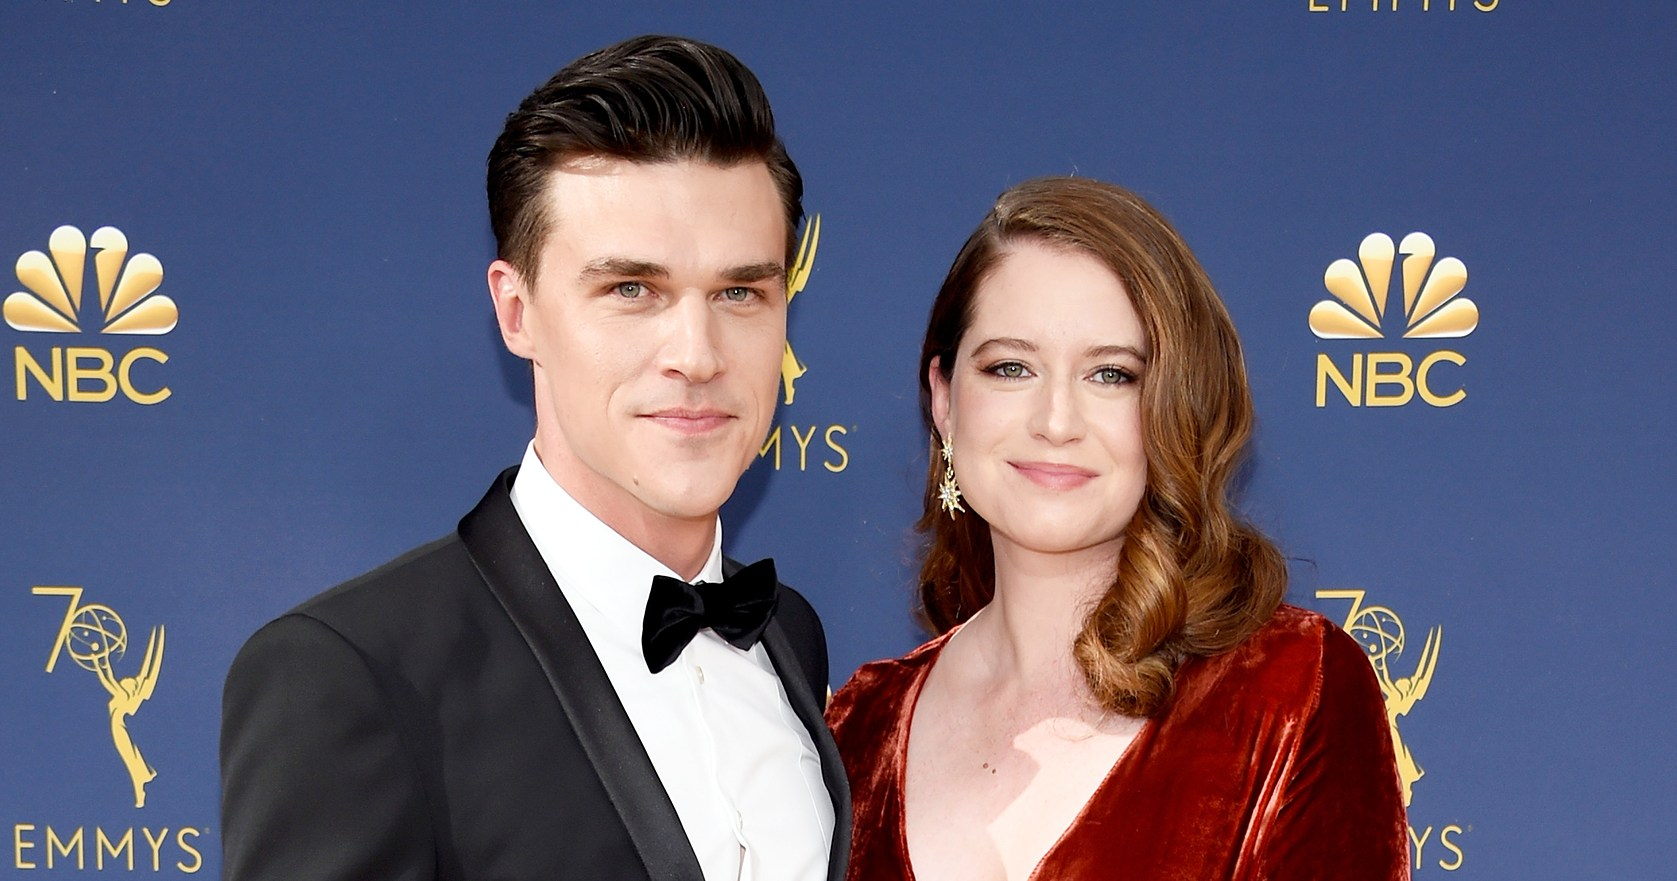 'AHS' Star Finn Wittrock, Wife Sarah Roberts Expecting Their First Child